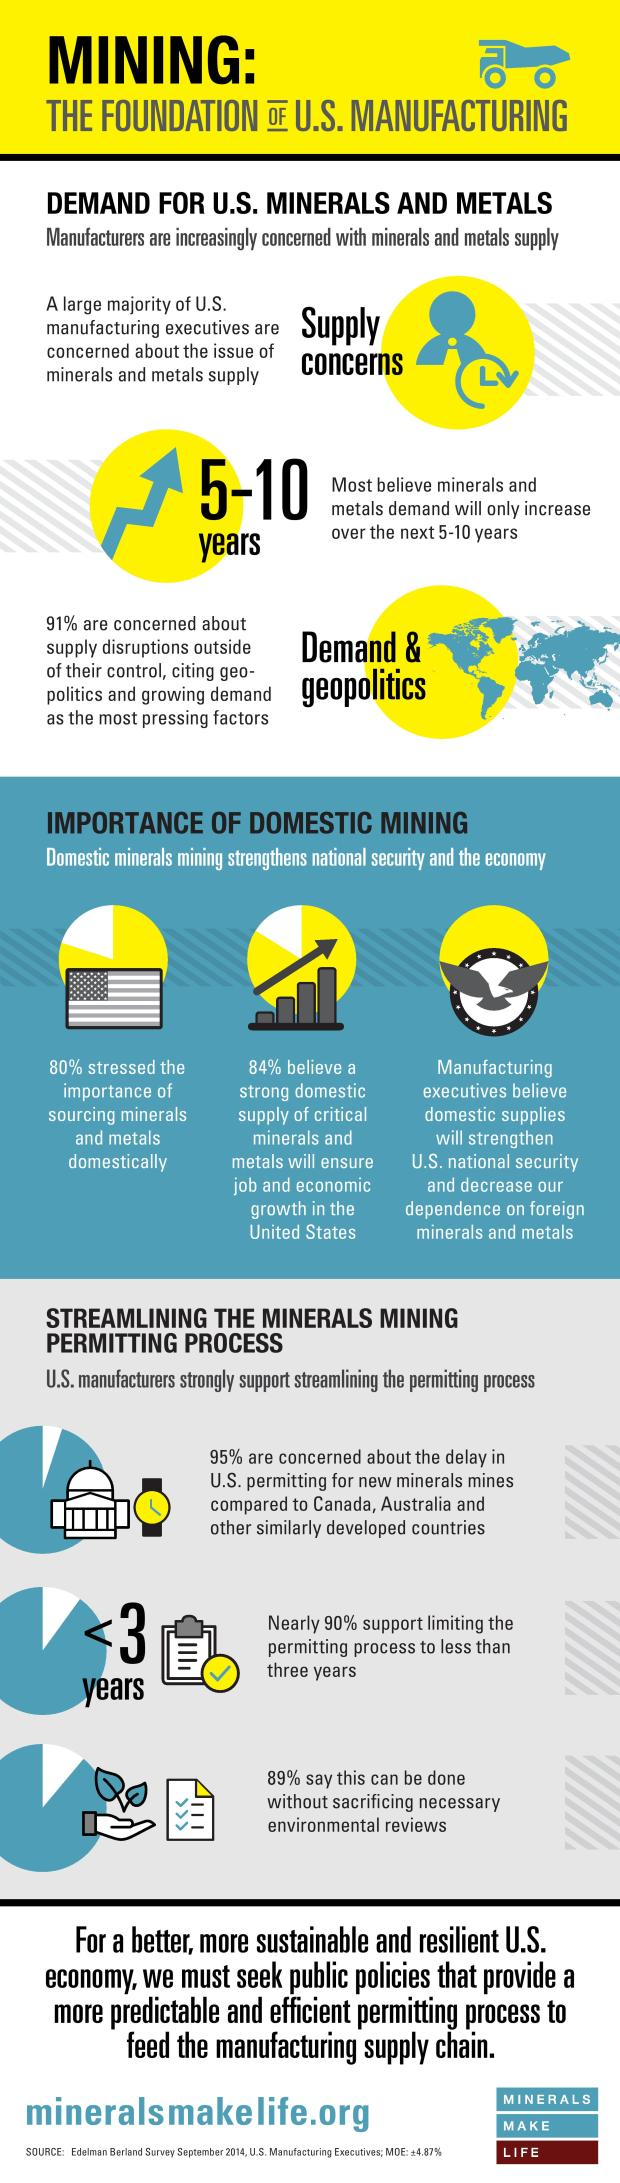 NMA_Mining_Infographic_FINAL-page-001